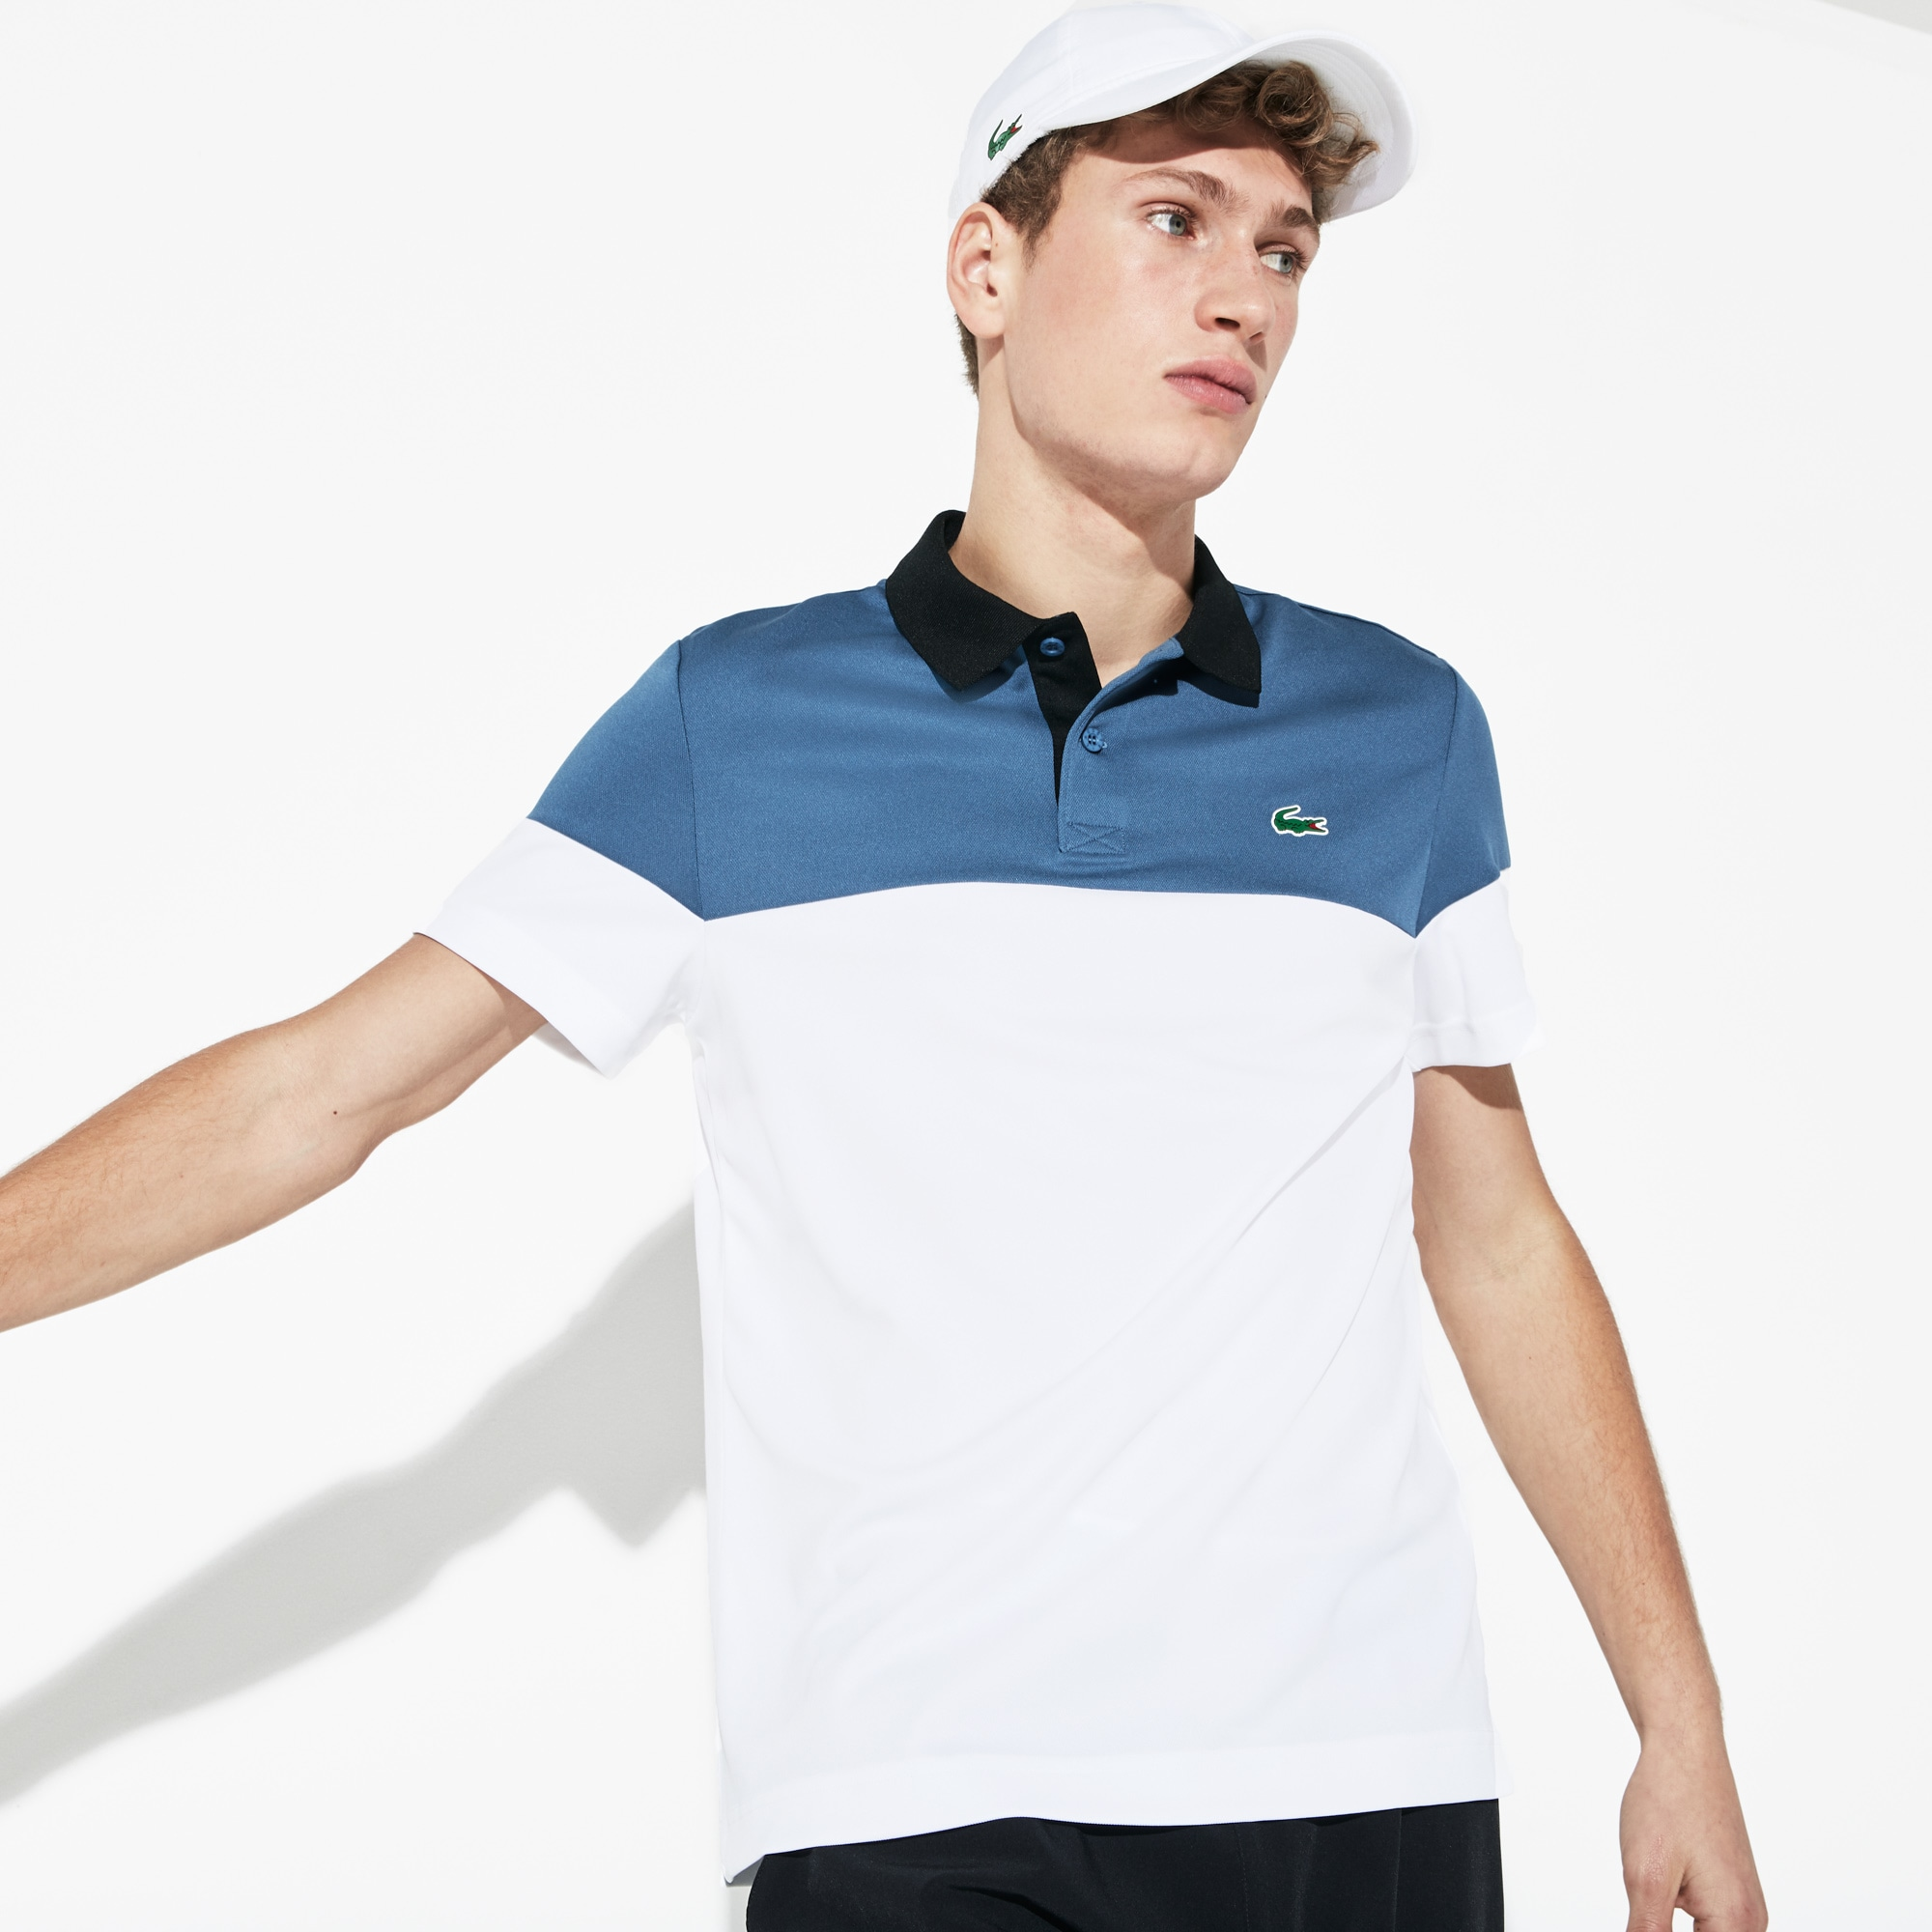 Men's Lacoste SPORT Colourblock Breathable Tech Piqué Tennis Polo Shirt